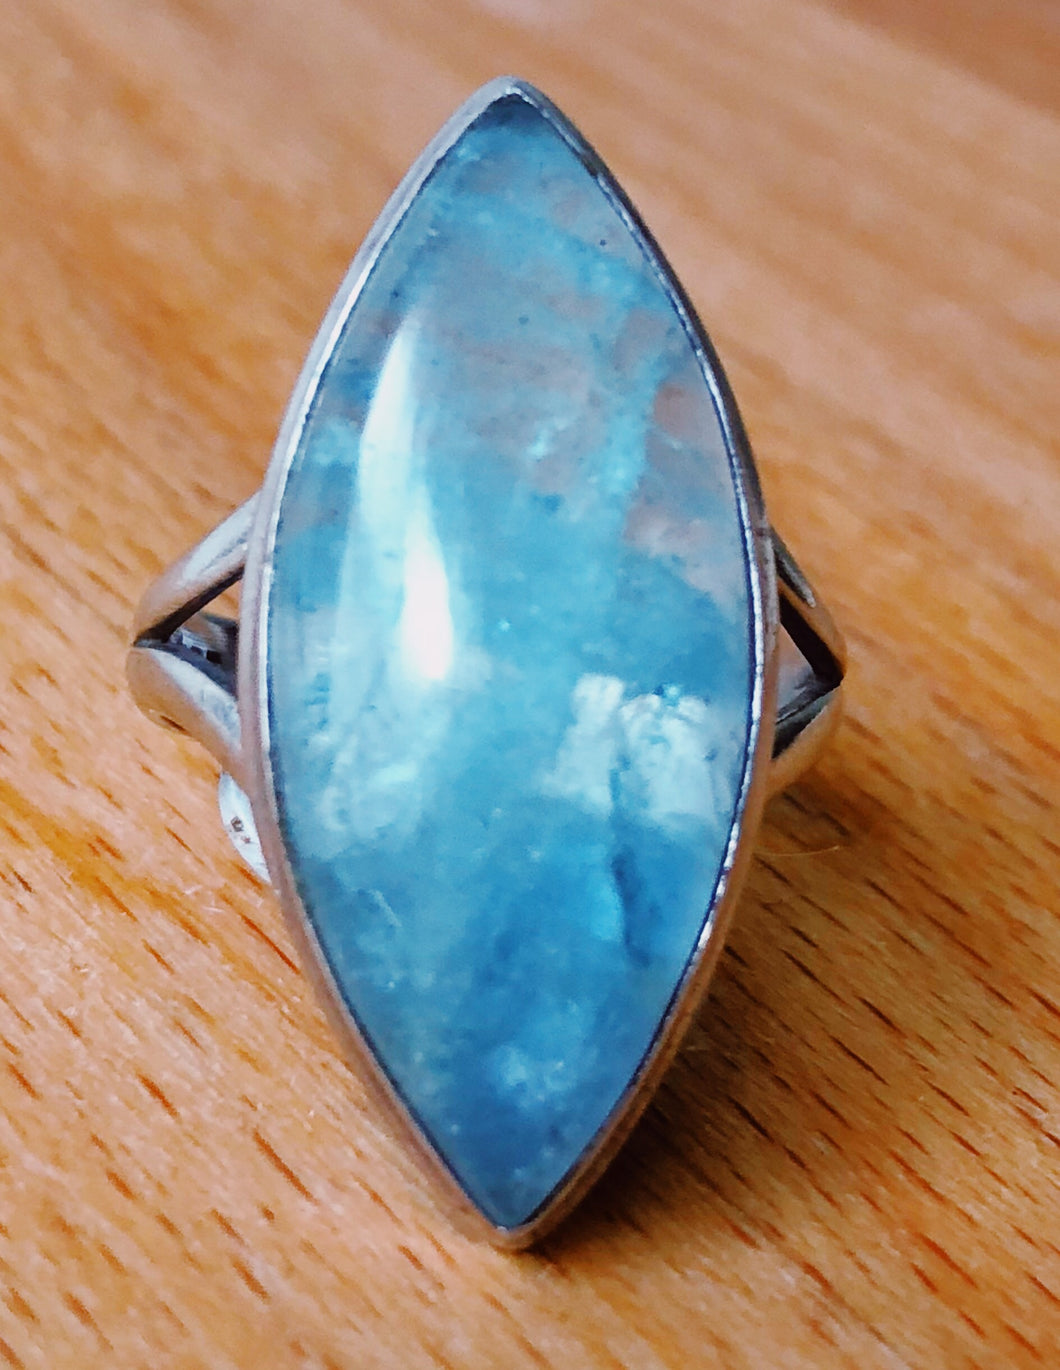 AQUAMARINE RING - Polished stone 3cm length  STERLING SILVER BAND ; SIZE